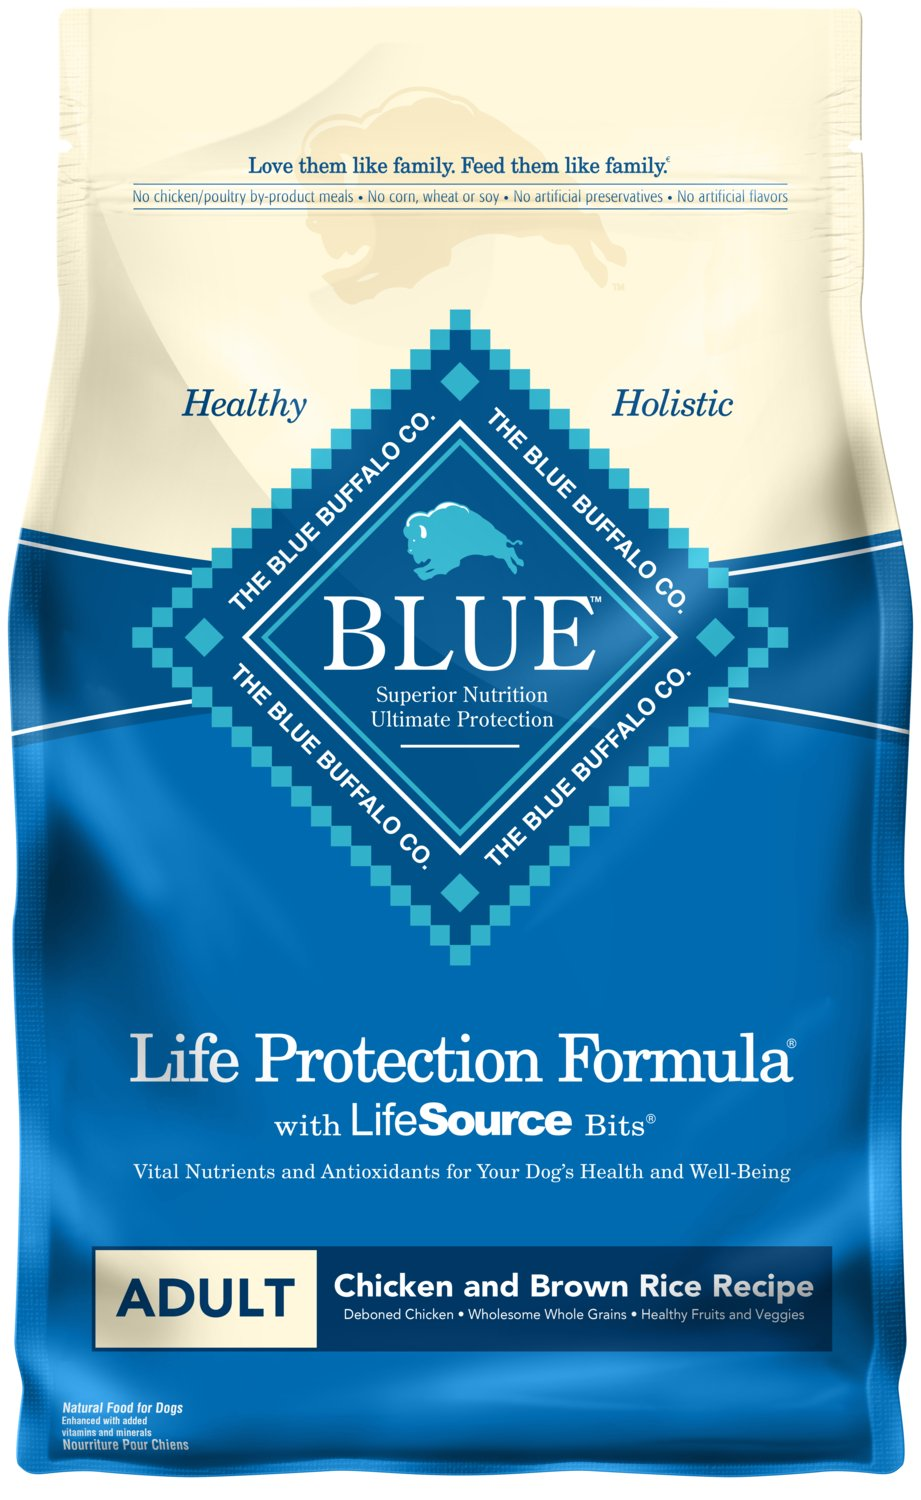 Blue Buffalo Life Protection Formula Adult Dog Food - Natural Dry Dog Food for Adult Dogs - Chicken and Brown Rice - 6 lb. Bag by Blue Buffalo